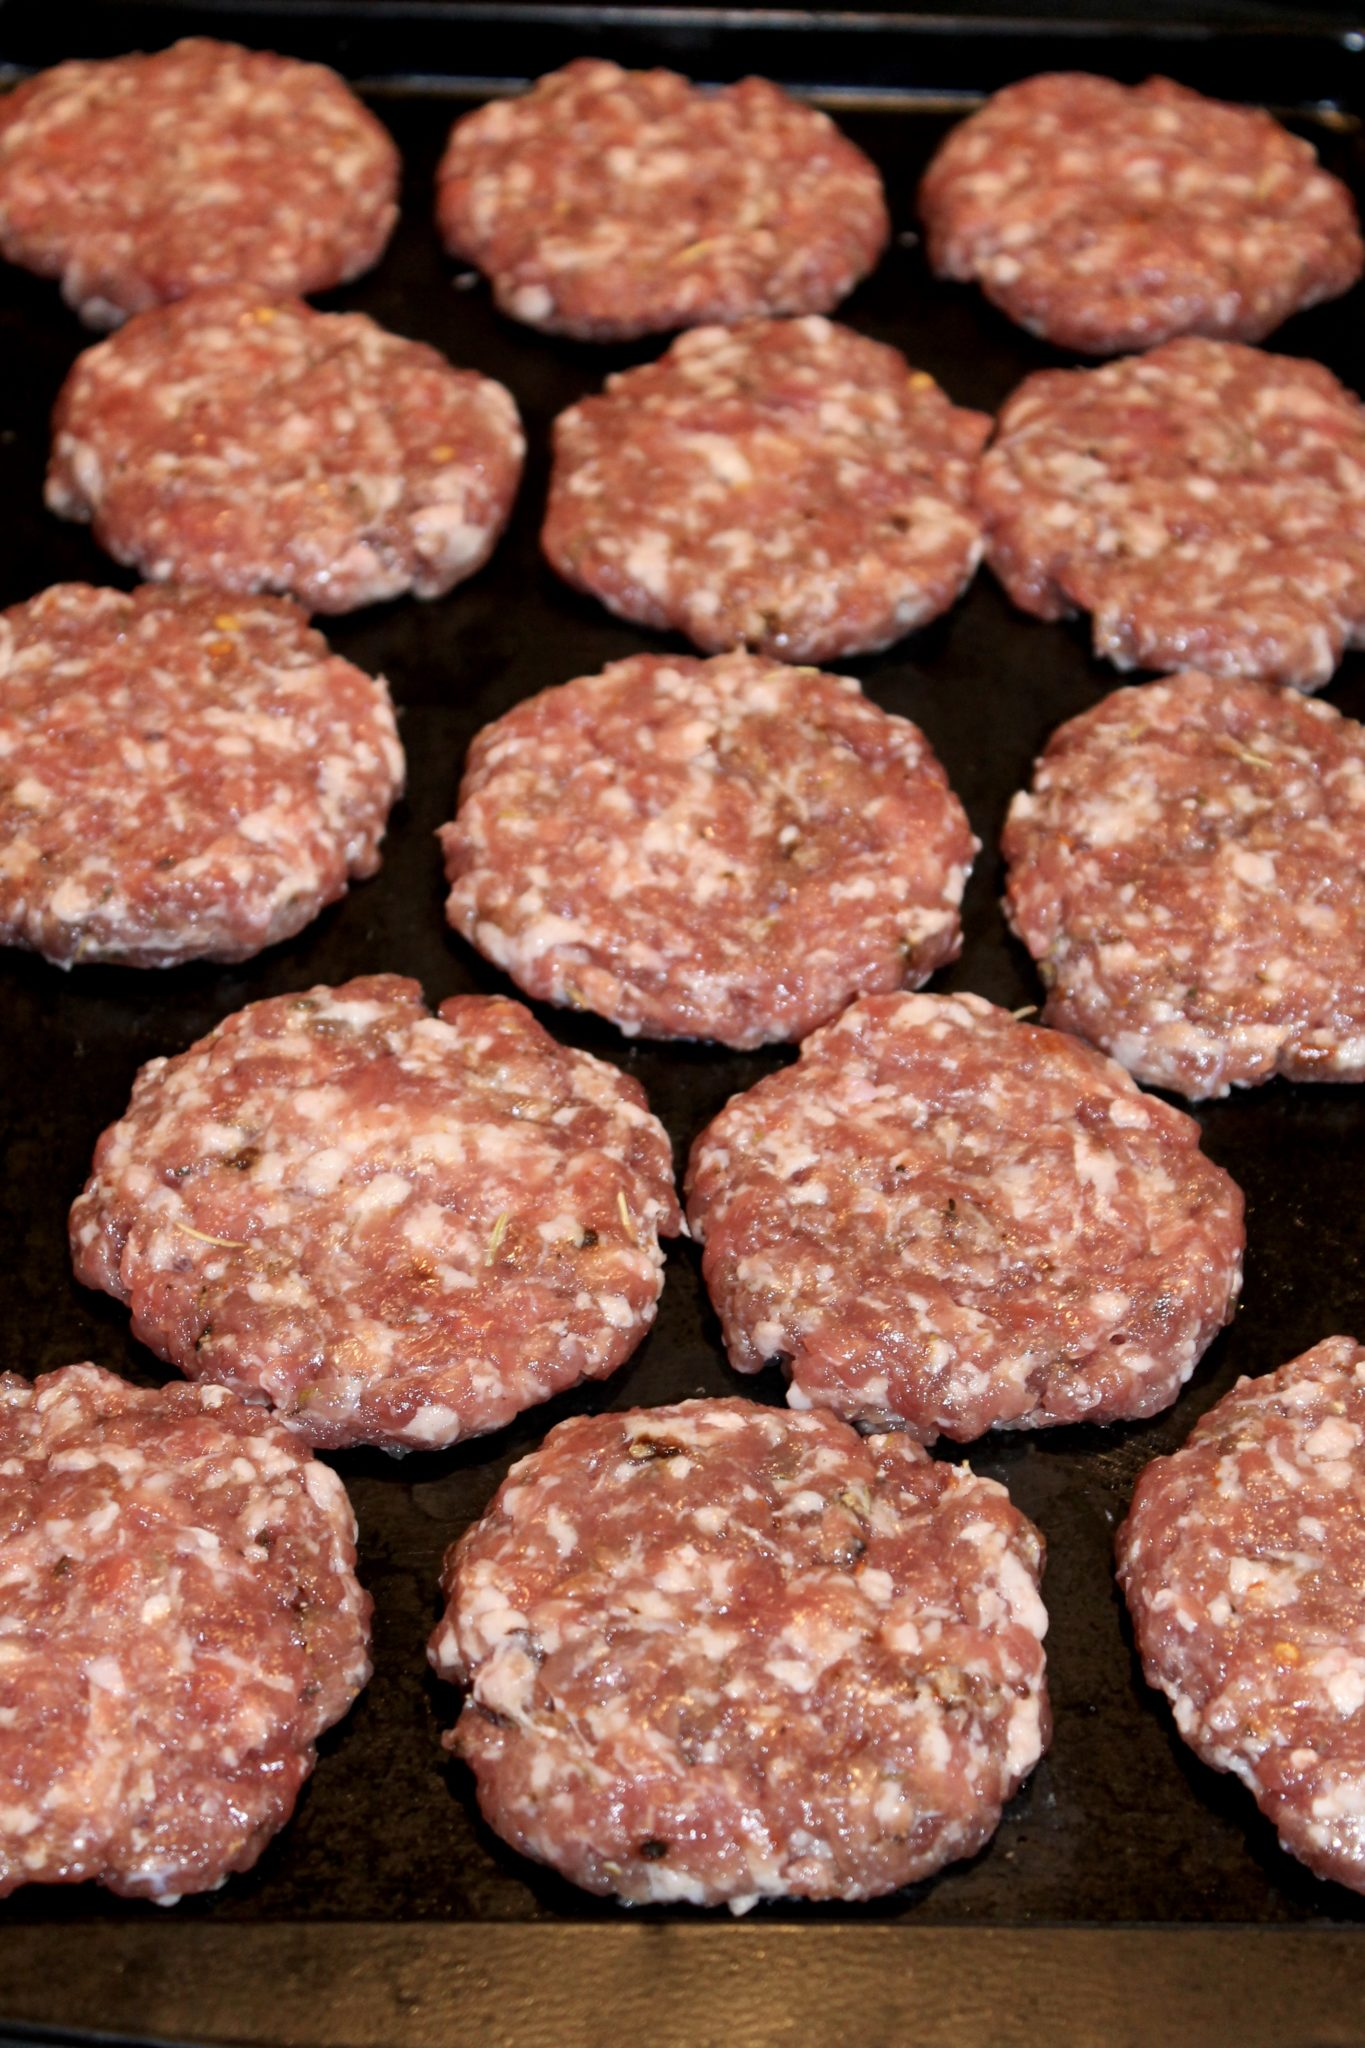 Homemade Breakfast Sausage Patties -Love sausage but trying to eat healthier? Ground pork and a short list of spices create a healthy alternative to sausage that can be used in so many ways.